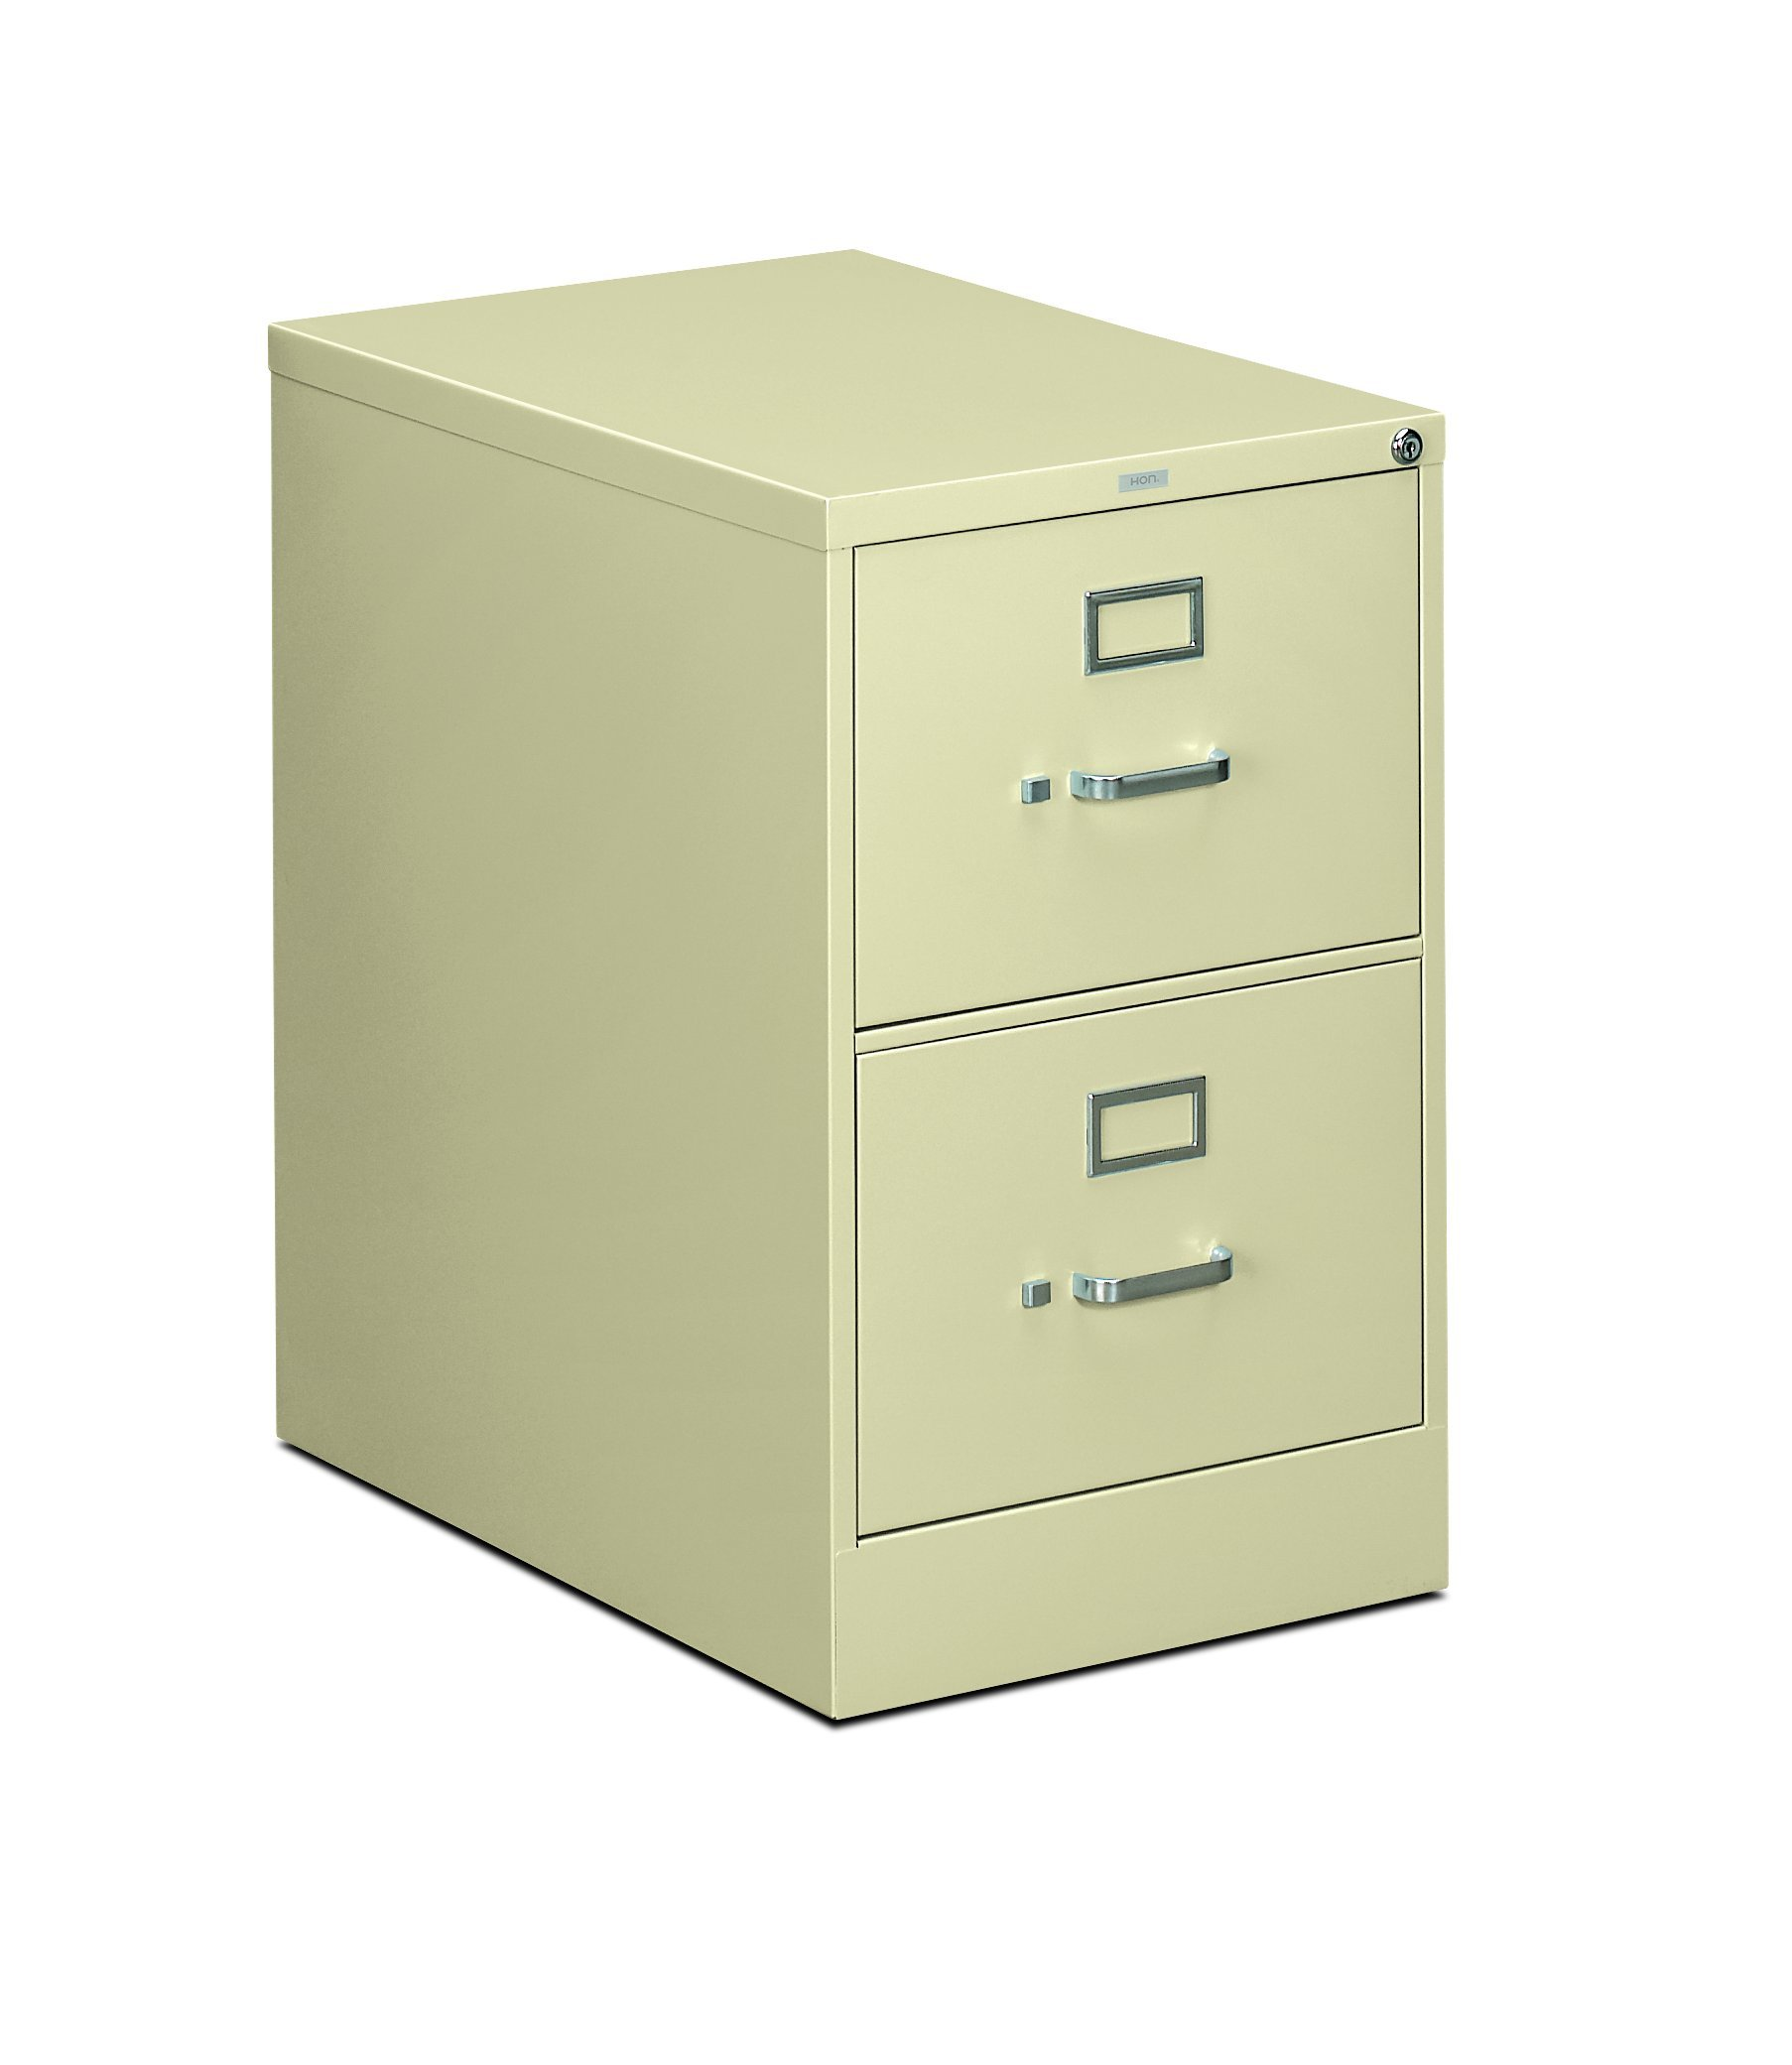 HON The Company P.L HON312CPL 310 Series Vertical File Cabinet Legal Width, 2 Drawers, Putty (H312C),